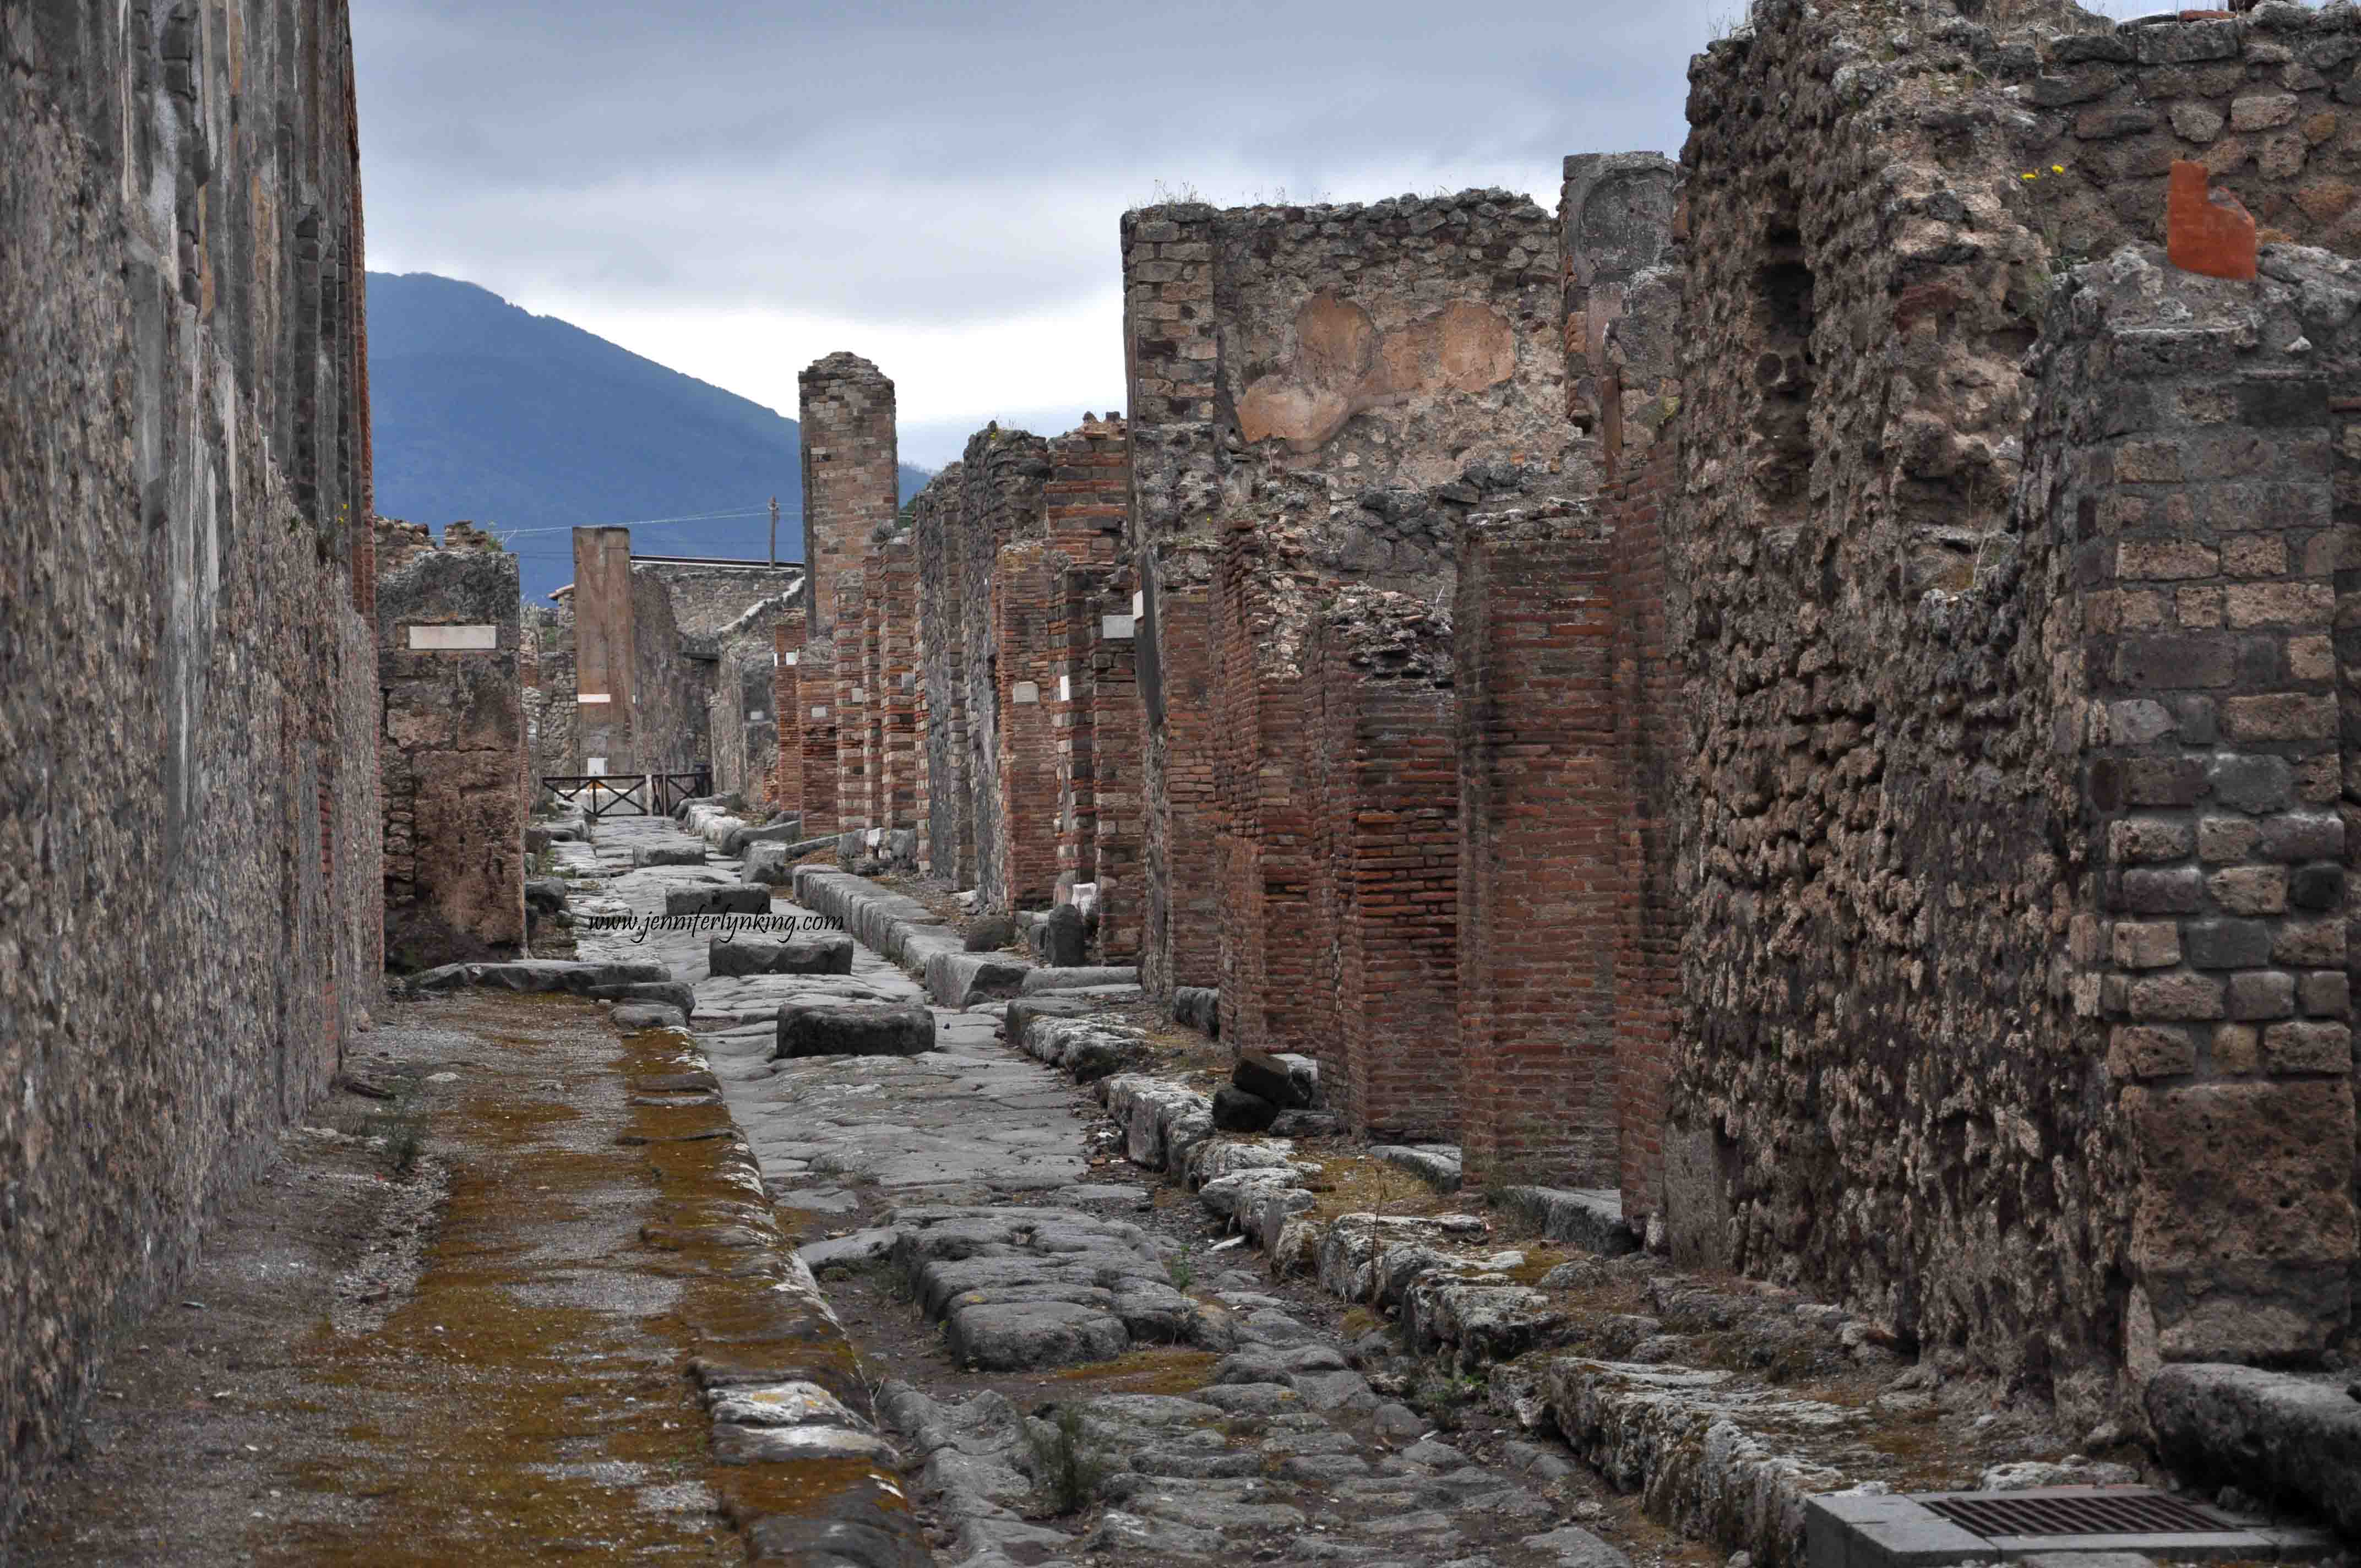 Urban life in pompeii and herculaneum essay